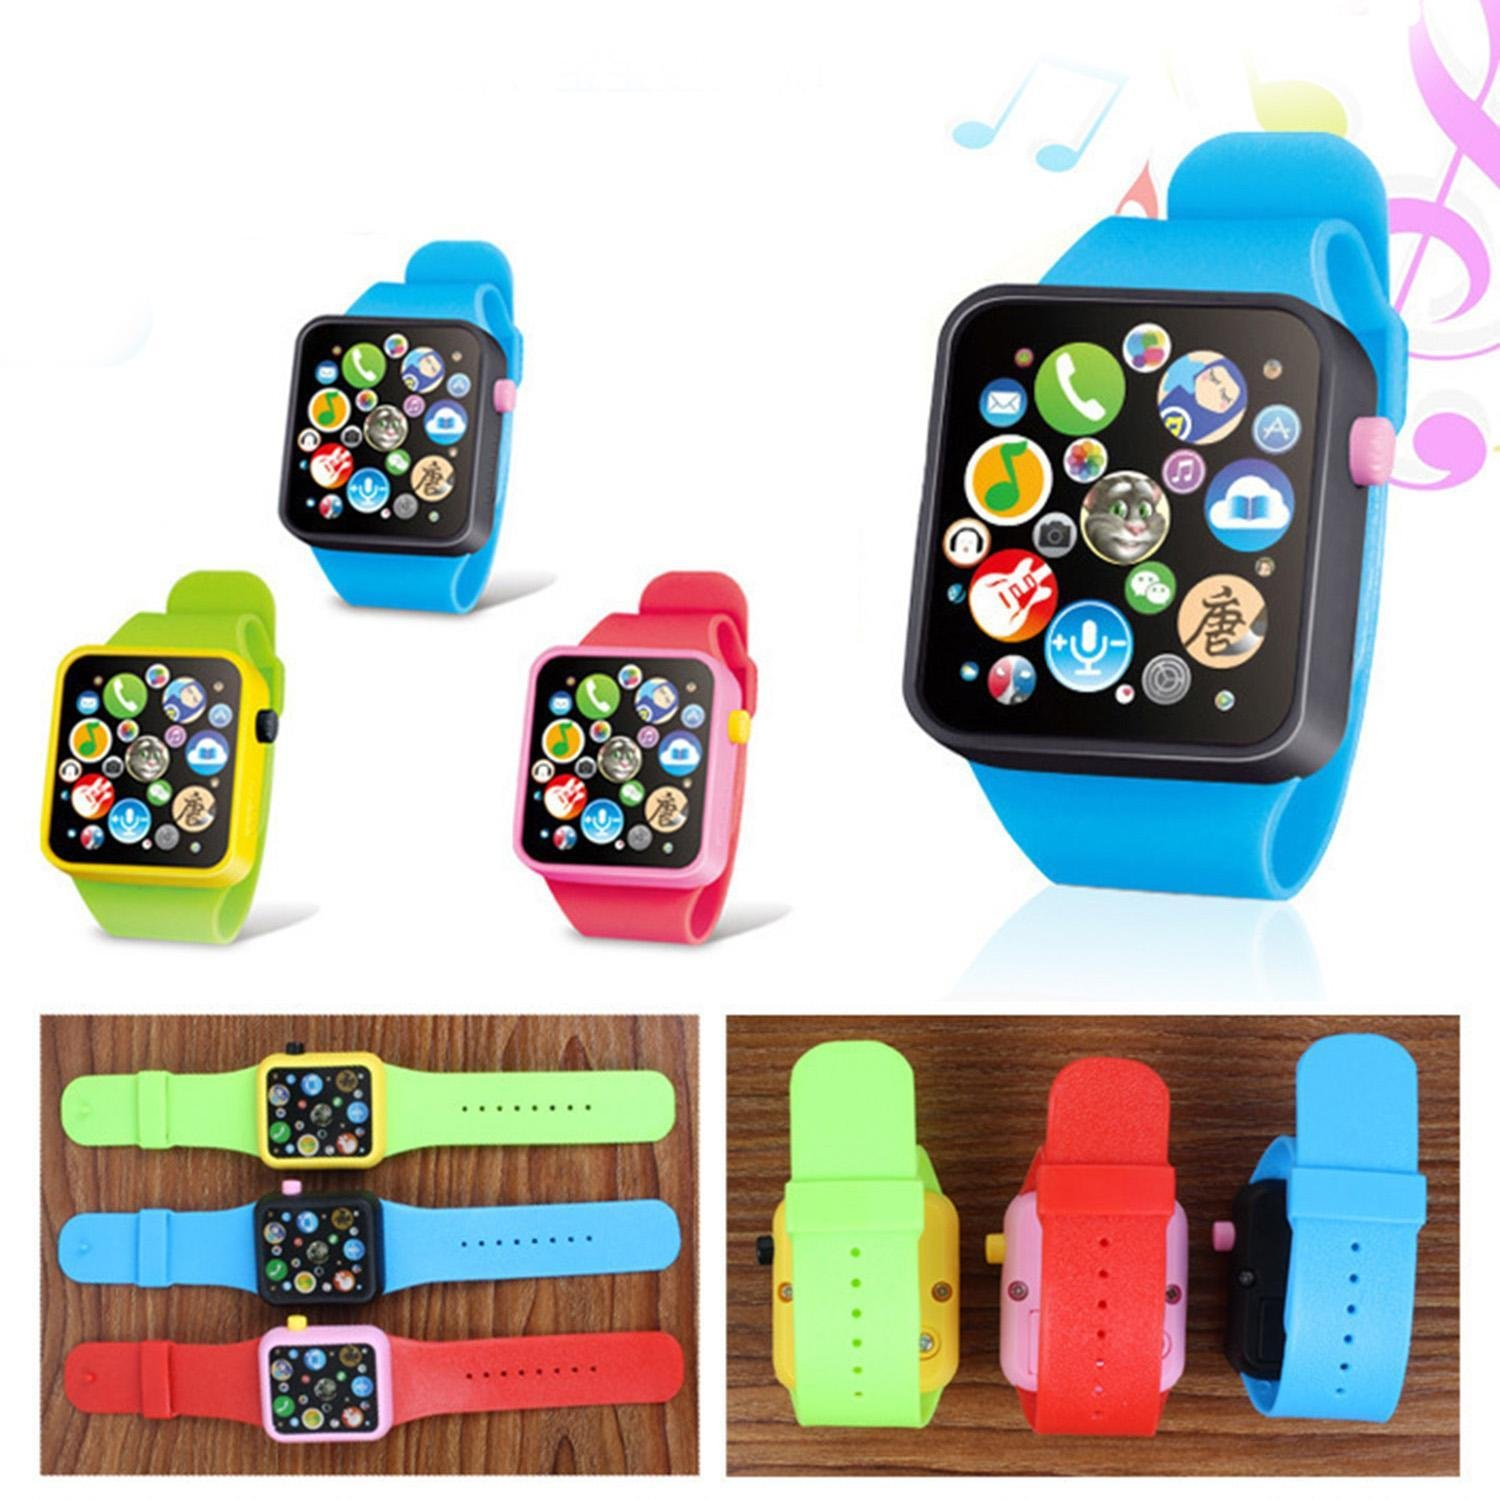 Amazon.com: Diaper Fashion Smart Watch Children Learning Multifunction Smart Watch Kids Toddler Wrist Touch Screen Toy Digital Watches: Toys & Games